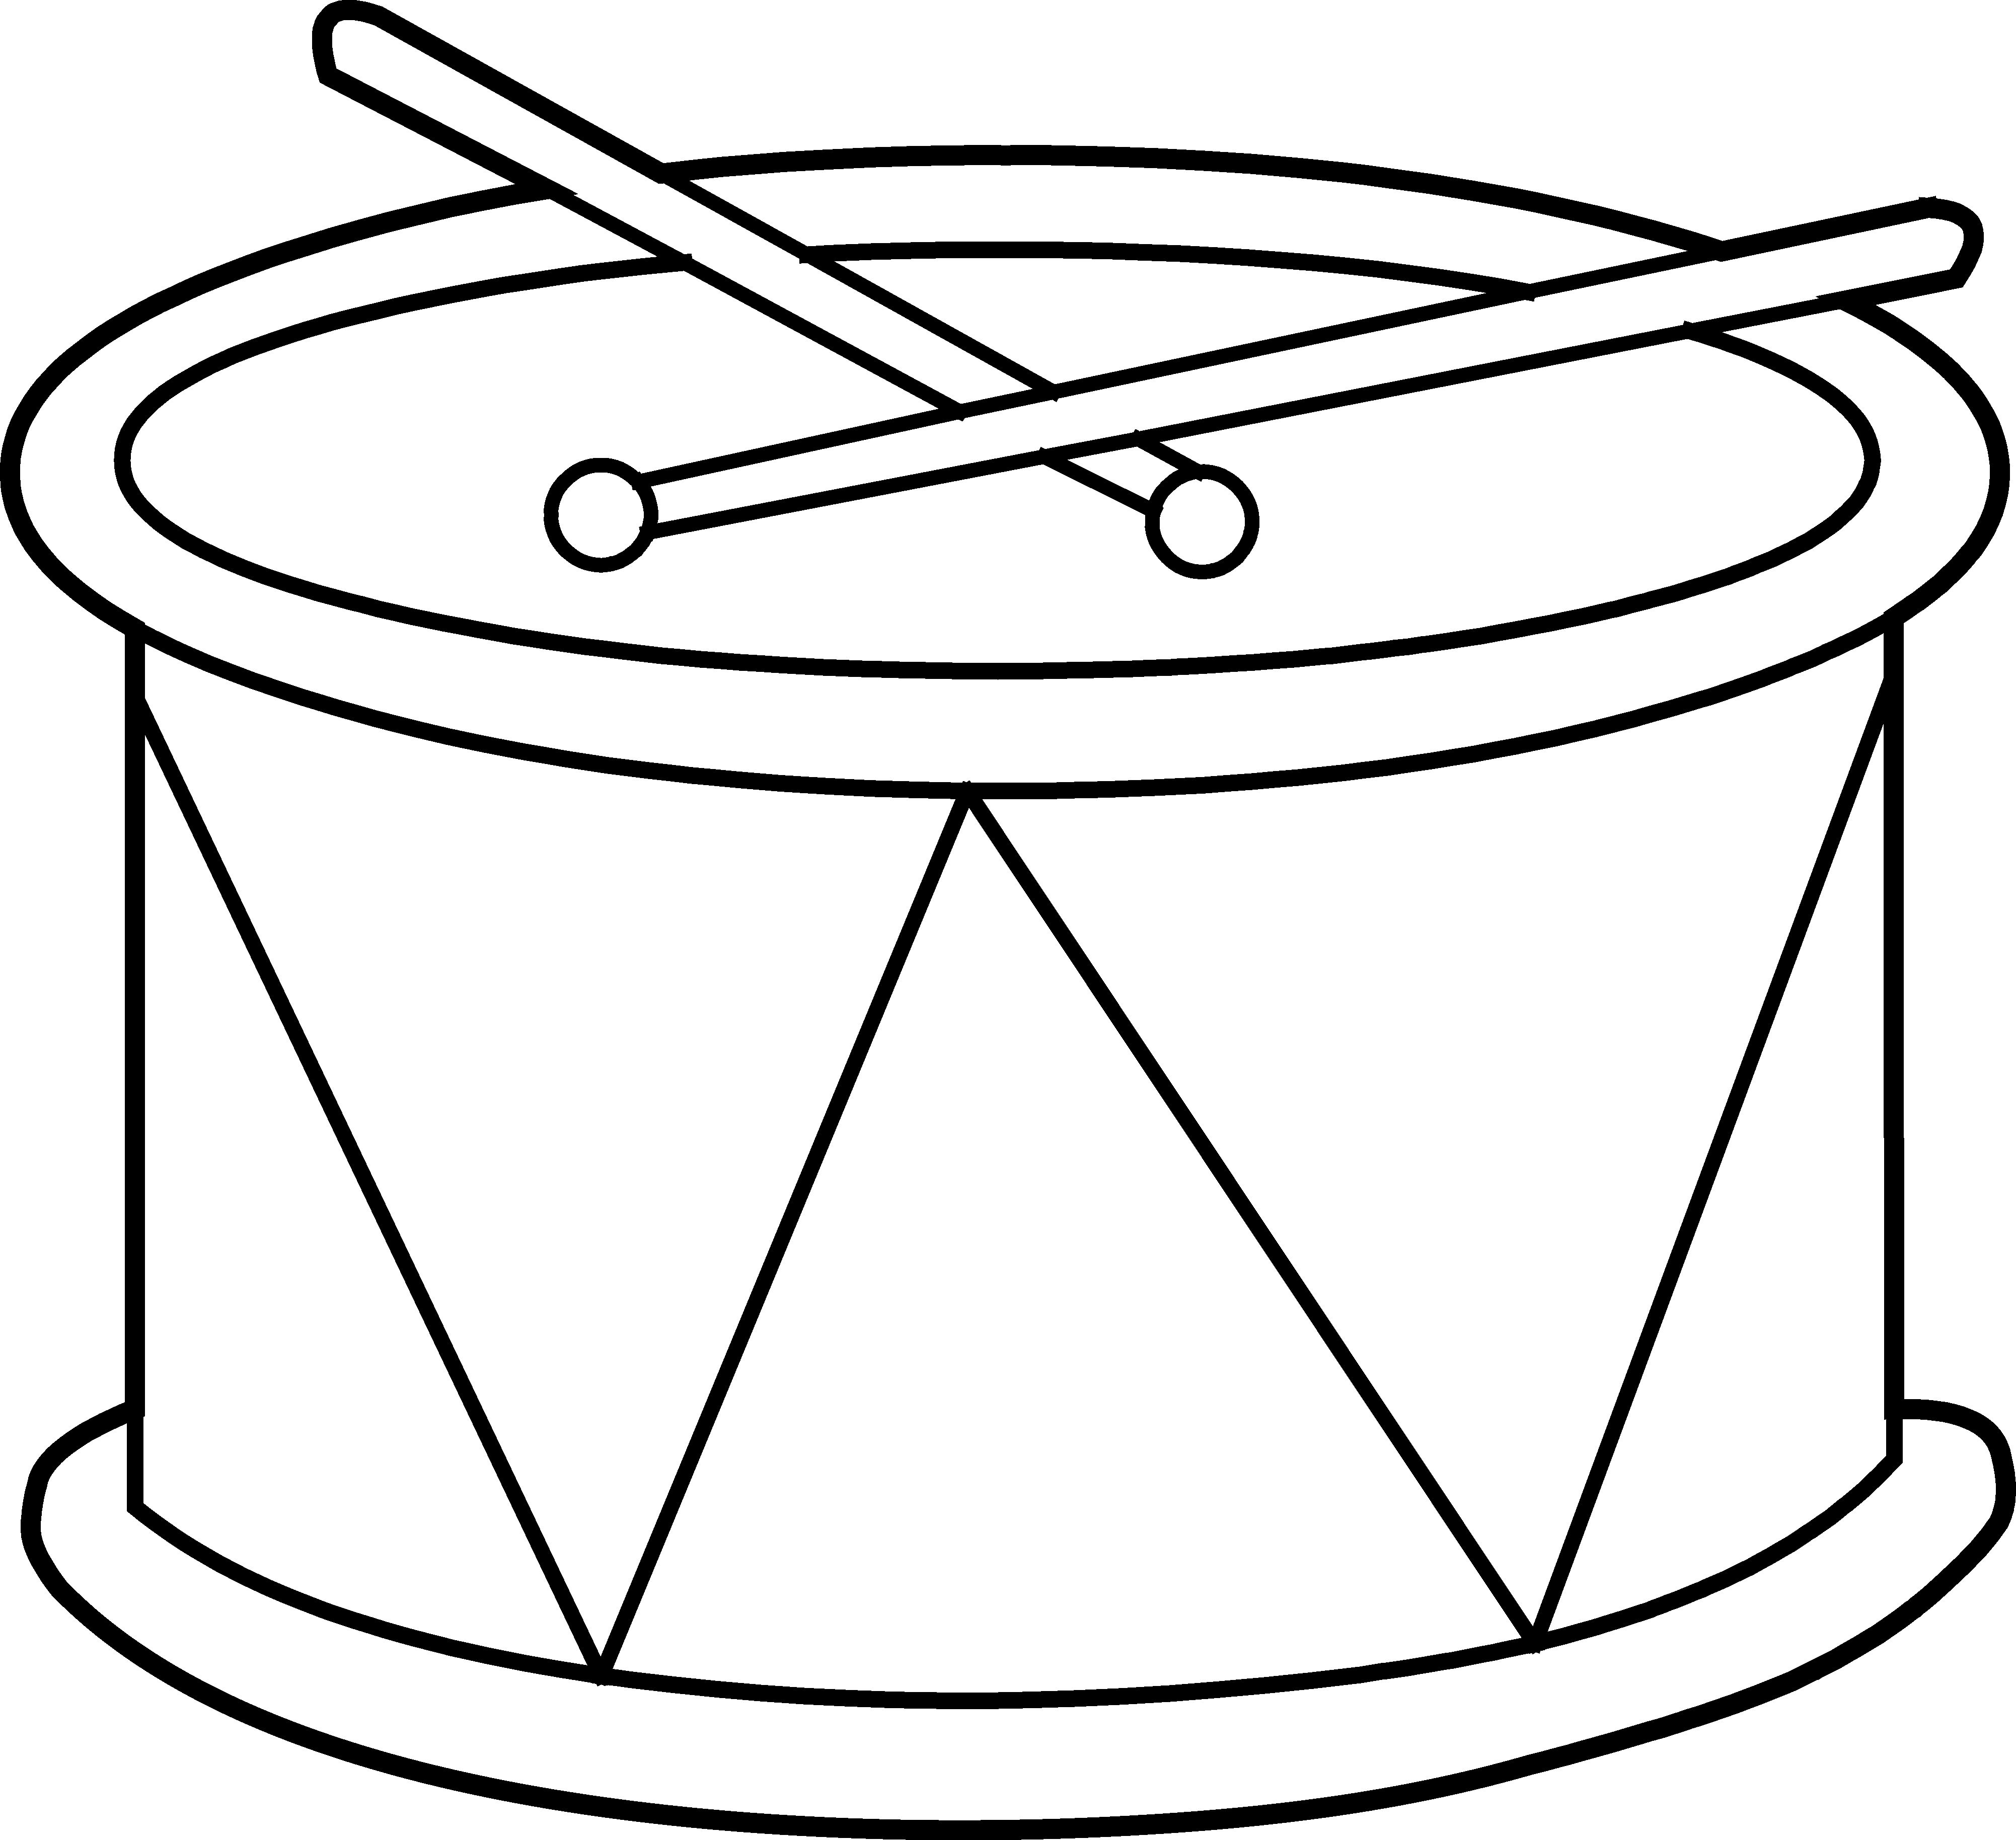 Drawing drums cute. Collection of drum